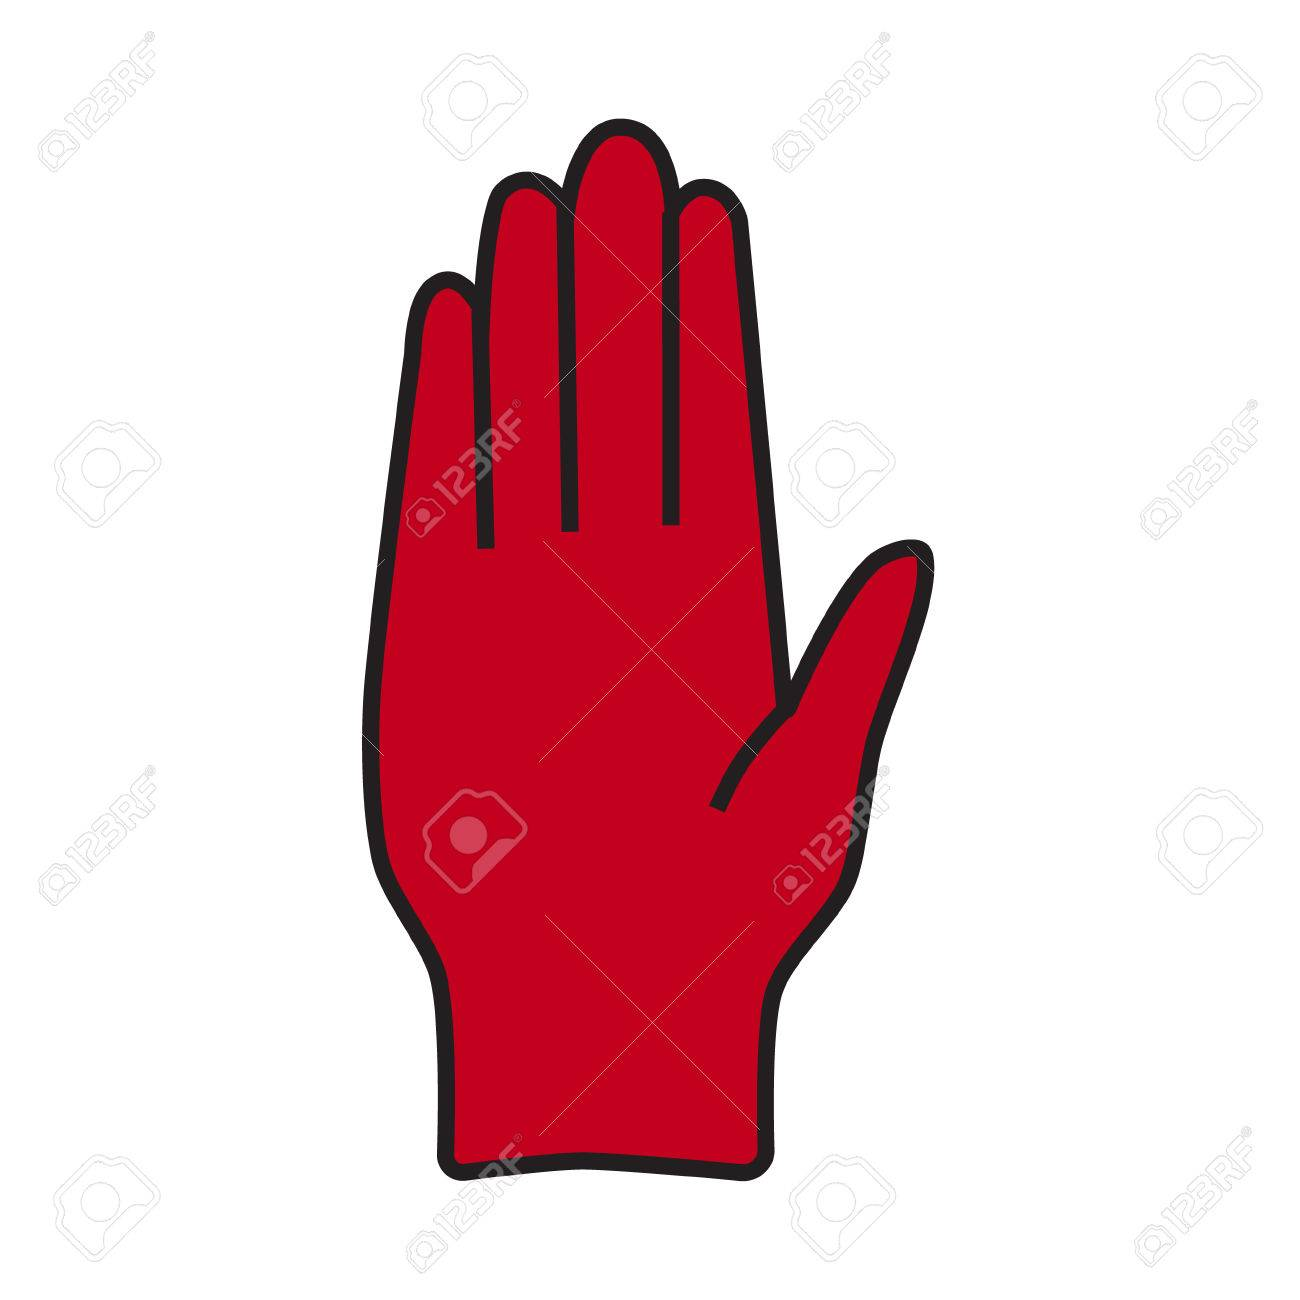 Raster Illustrations Stop Red Hand Symbol Icon Sign Royalty Fria